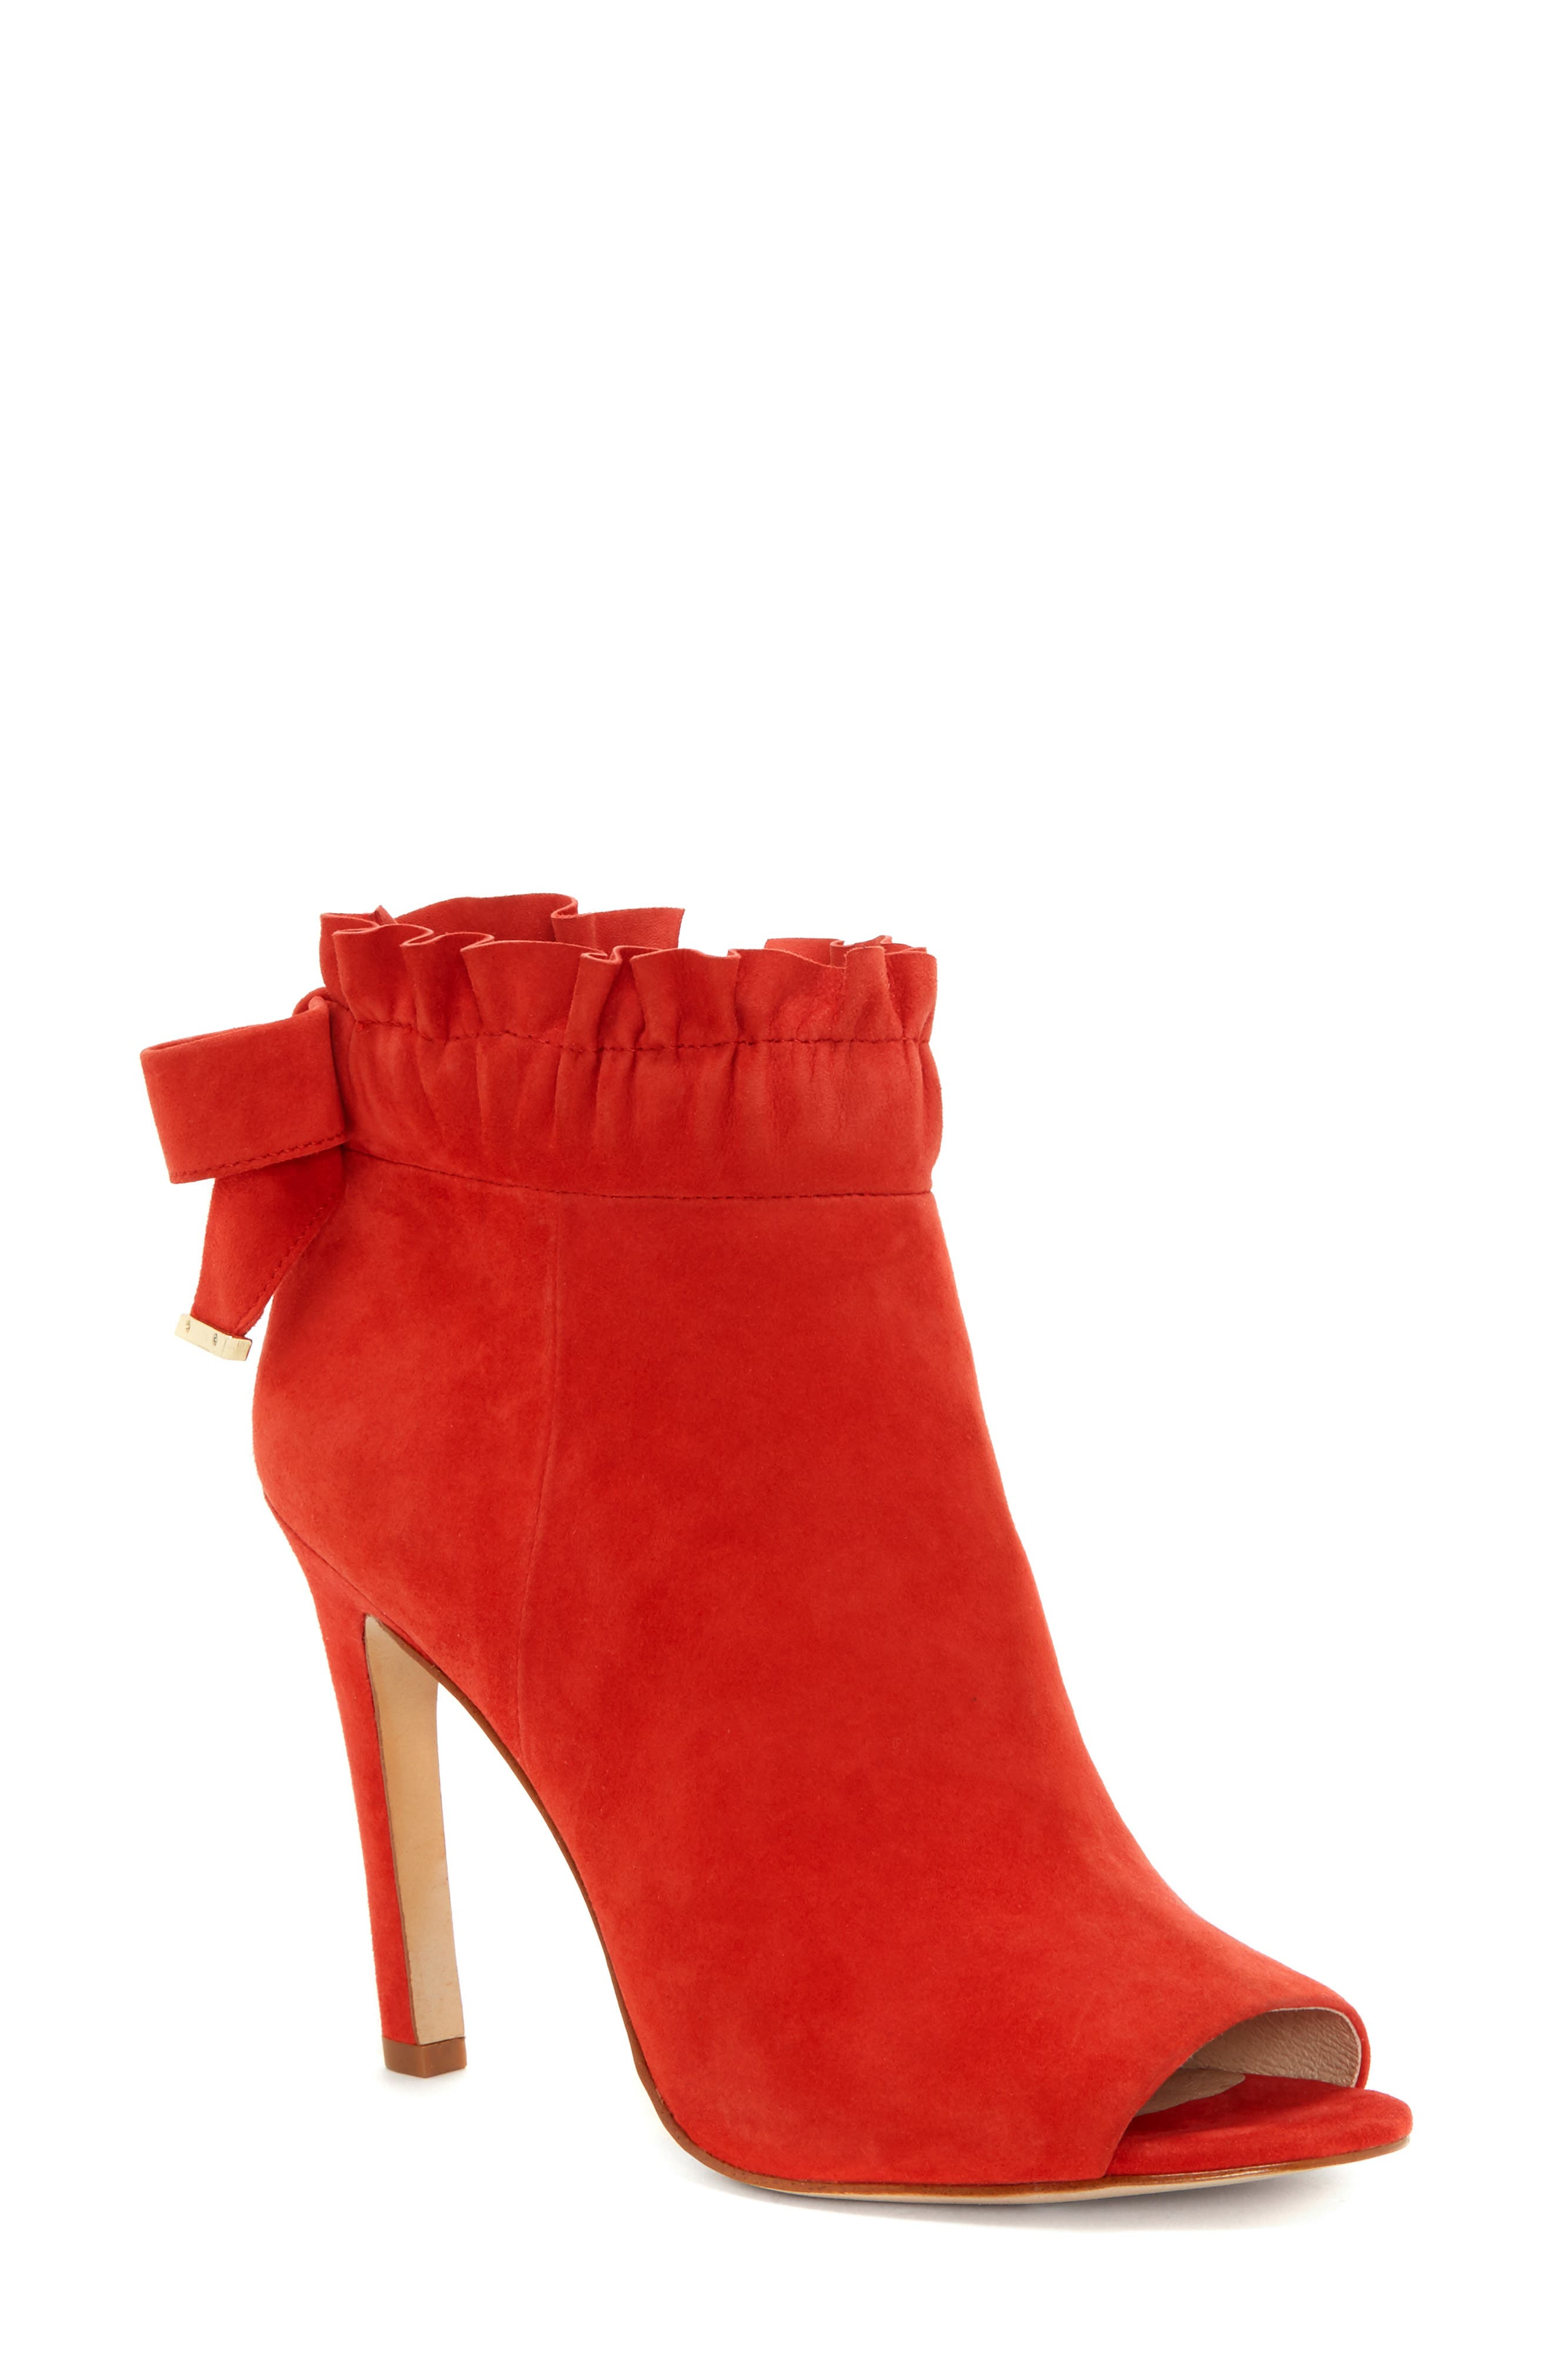 Innay Peep Toe Bootie,                             Main thumbnail 1, color,                             ACE SUEDE